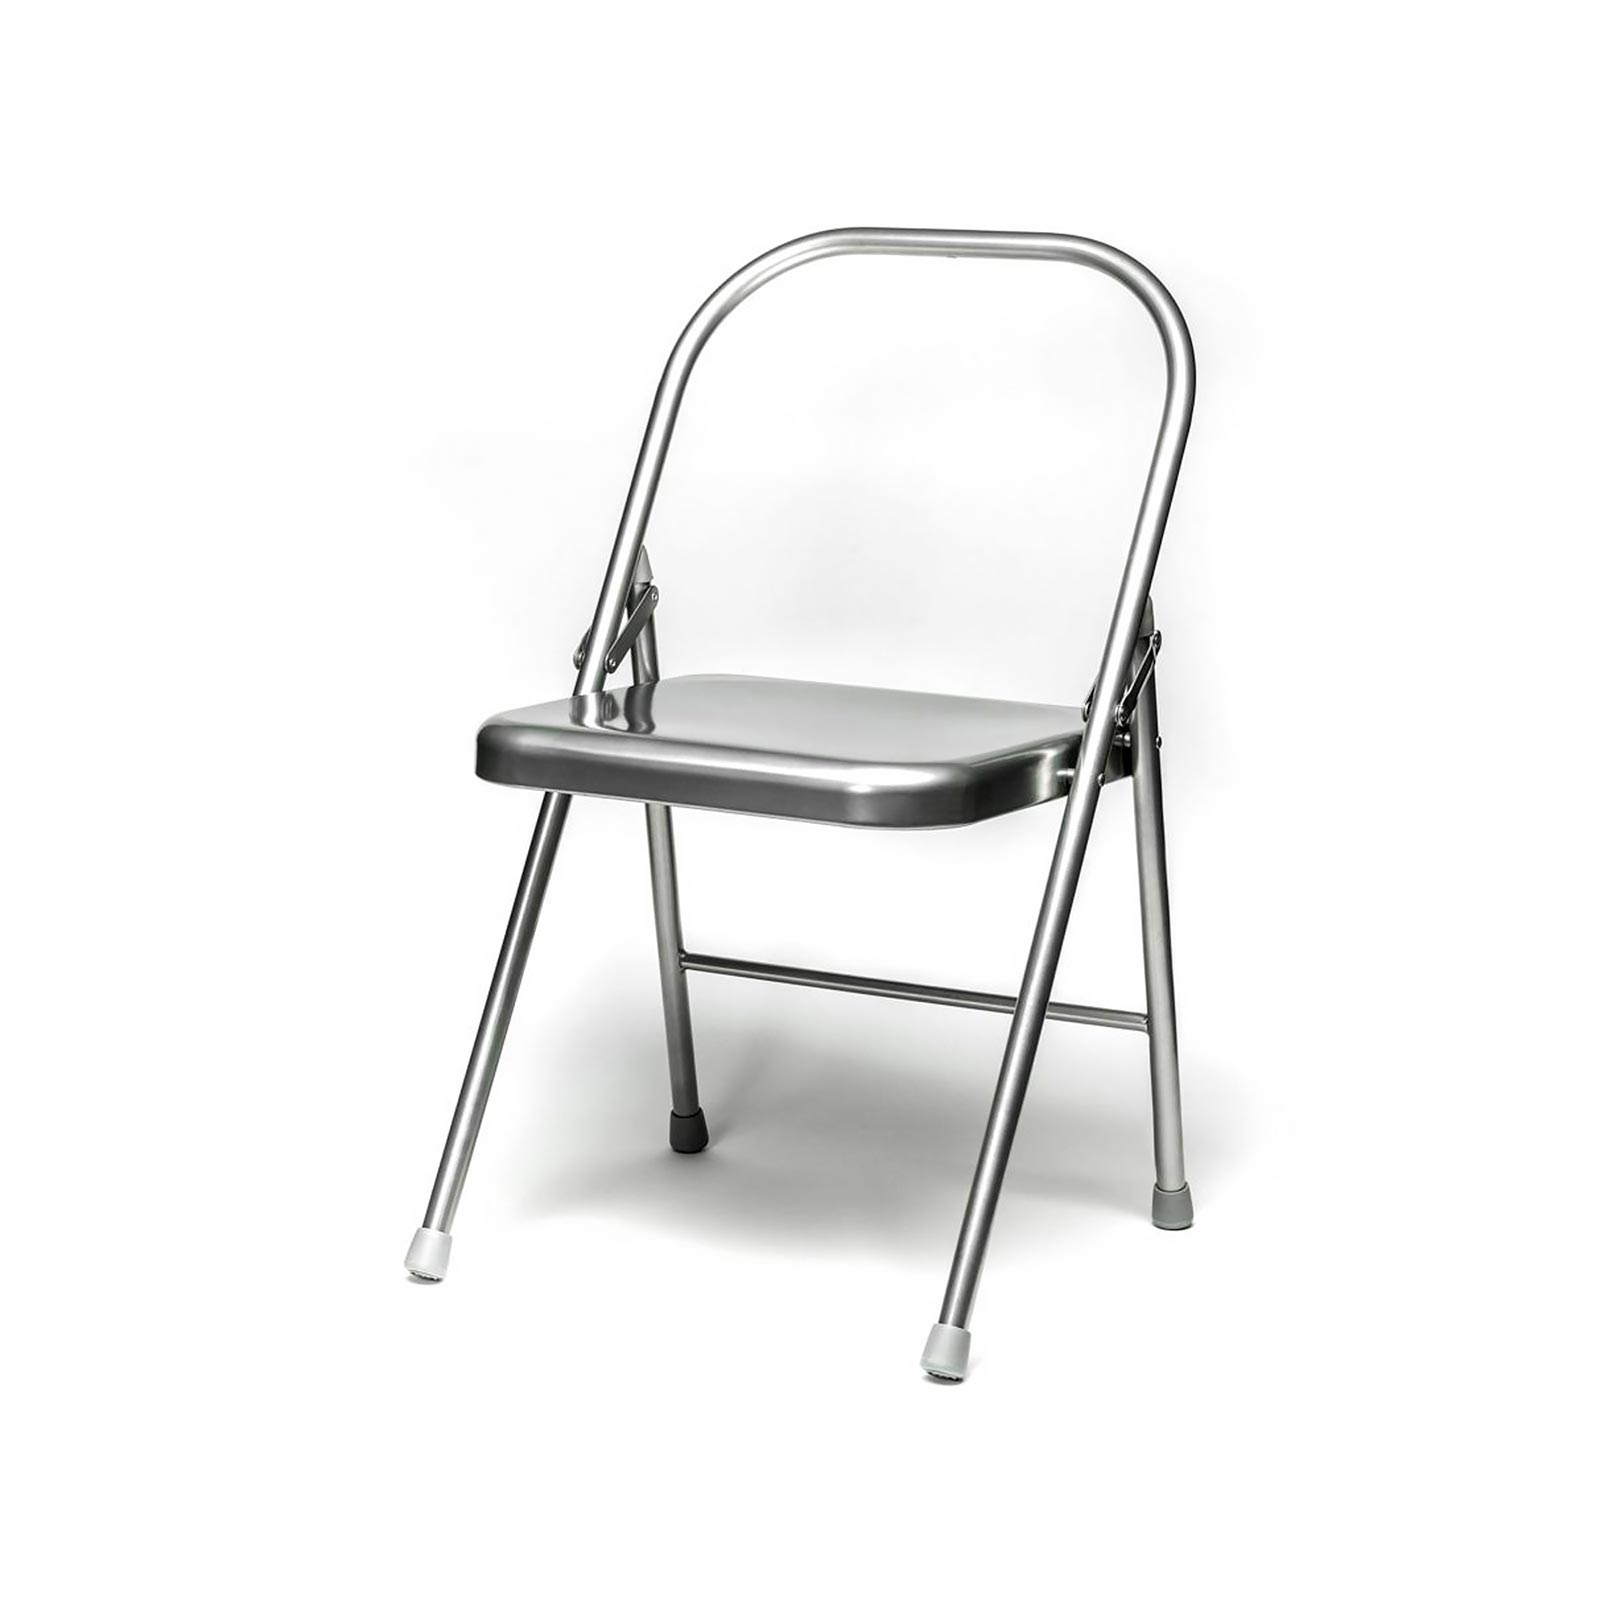 Kurma Yoga Chair